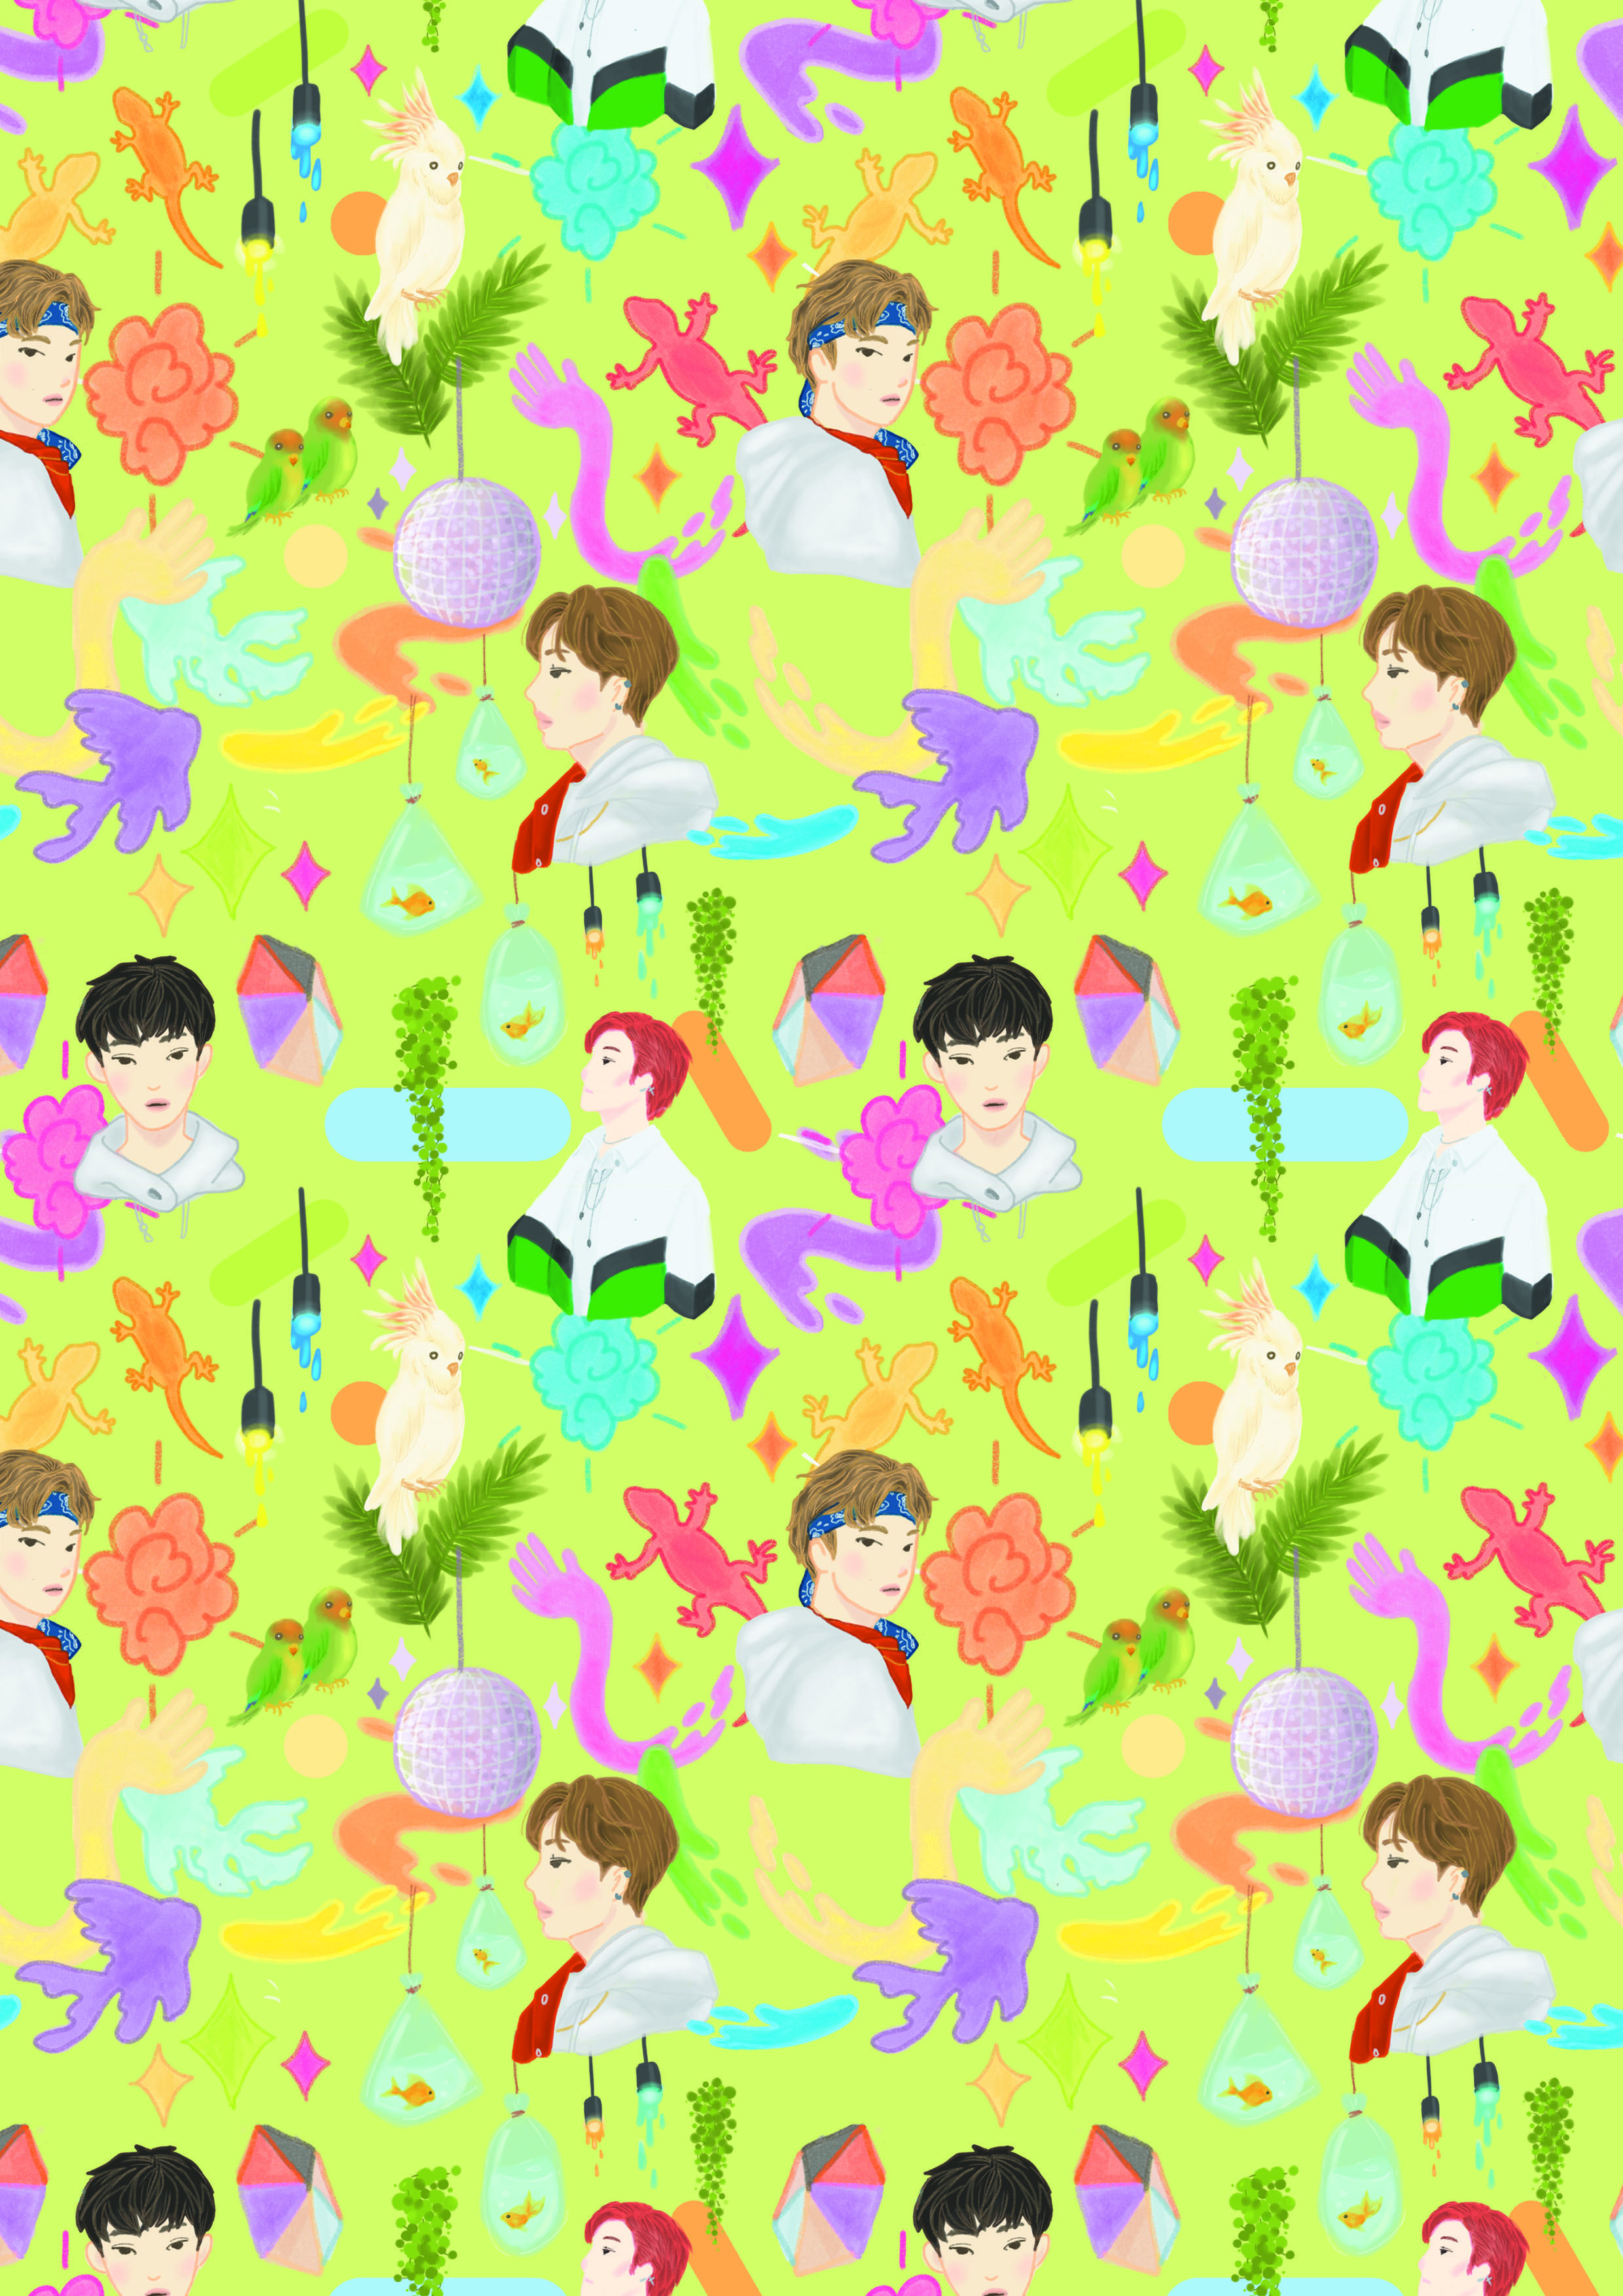 Yestoday Nct U Illustrated As Pattern Check Out My Artwork